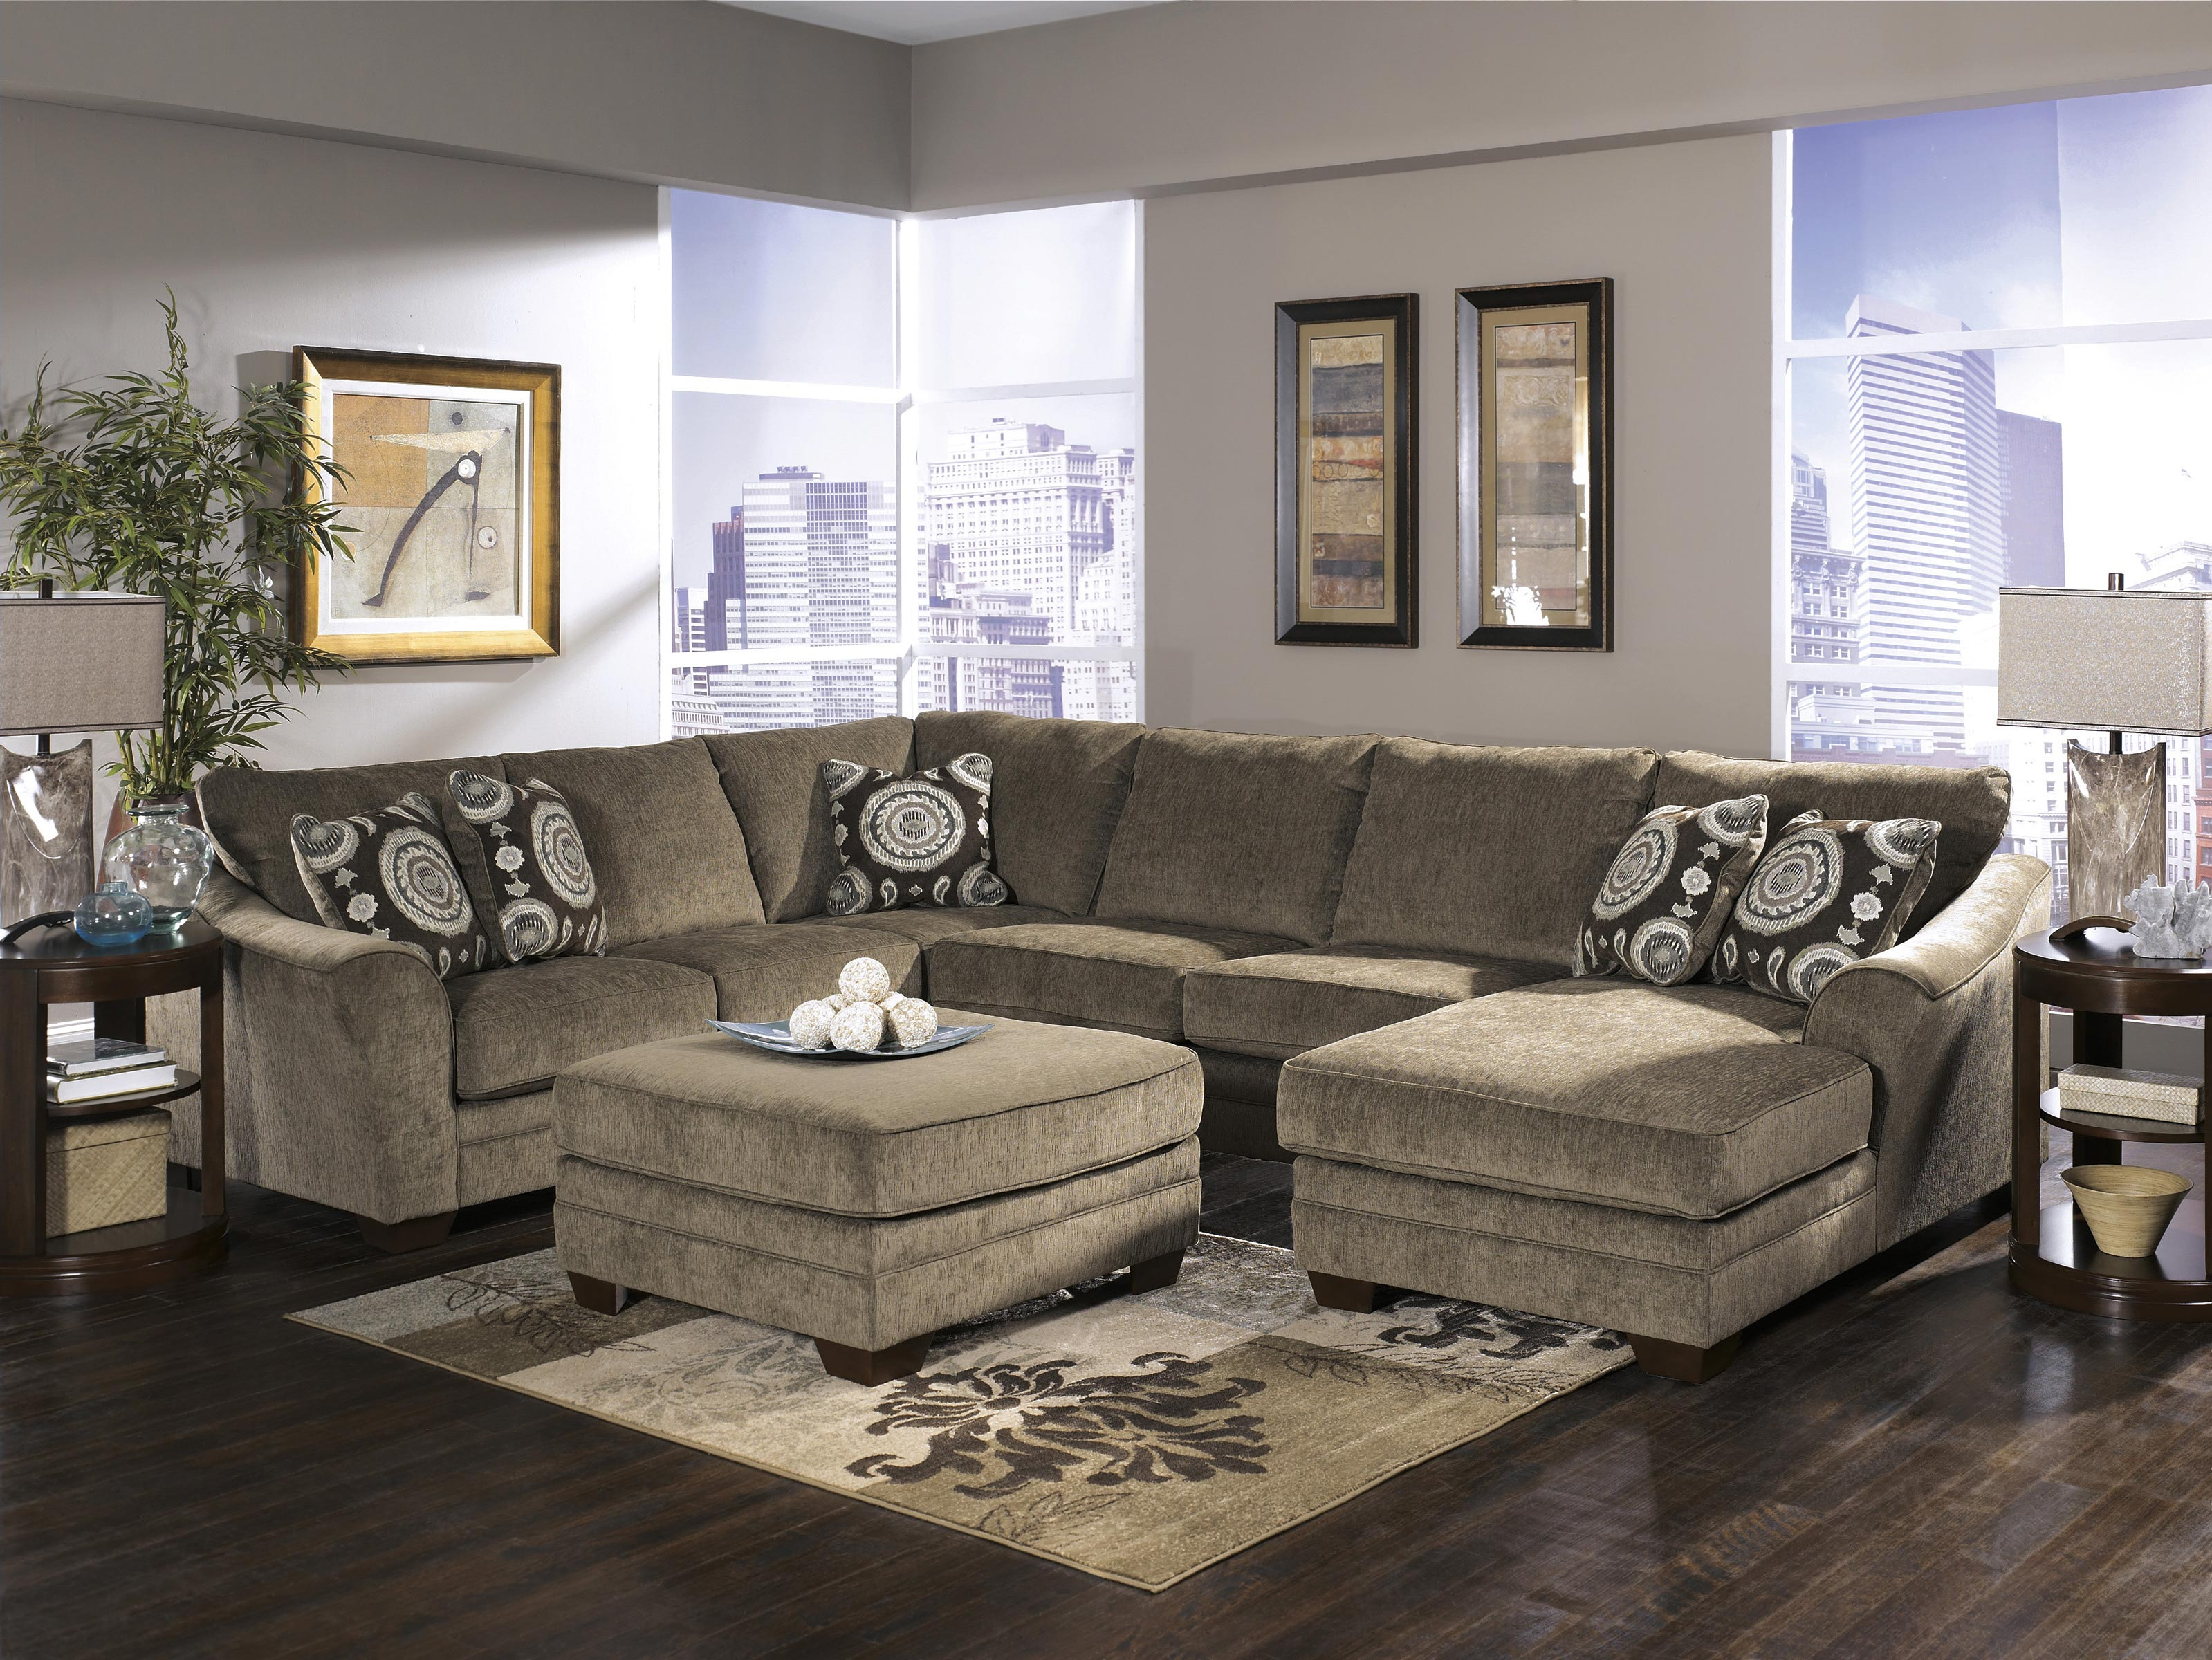 Living room ideas with sectionals sofa for small living for Living room design ideas grey sofa